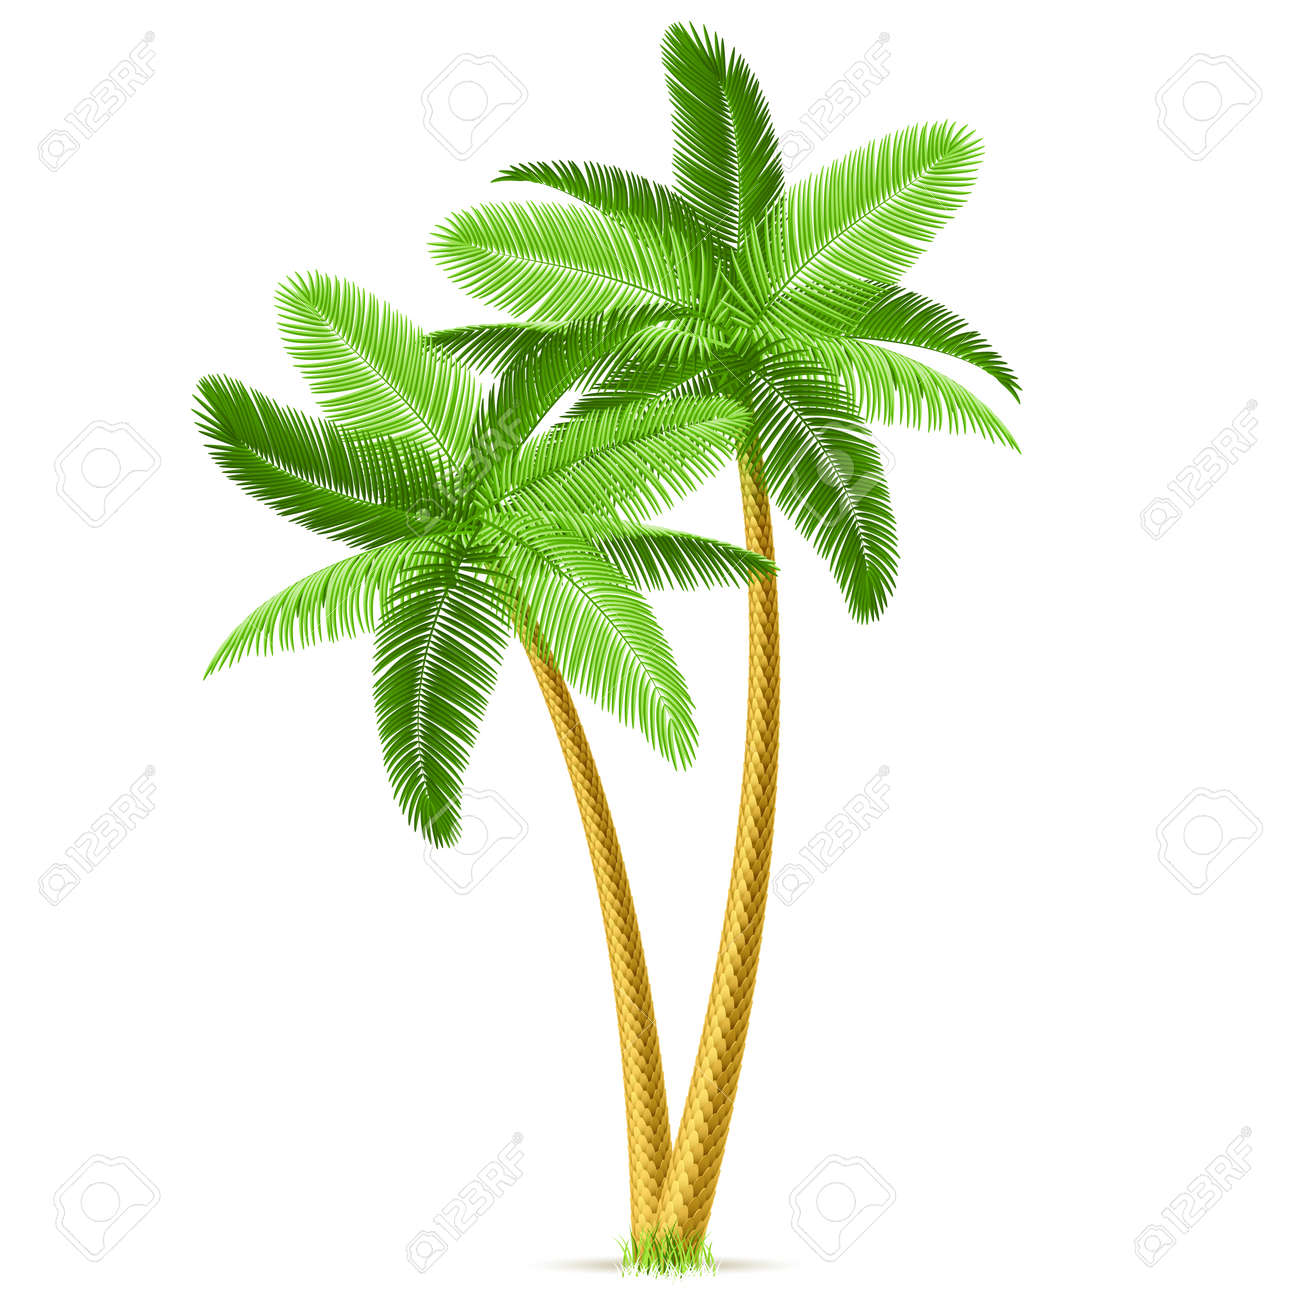 tropical palm trees royalty free cliparts vectors and stock